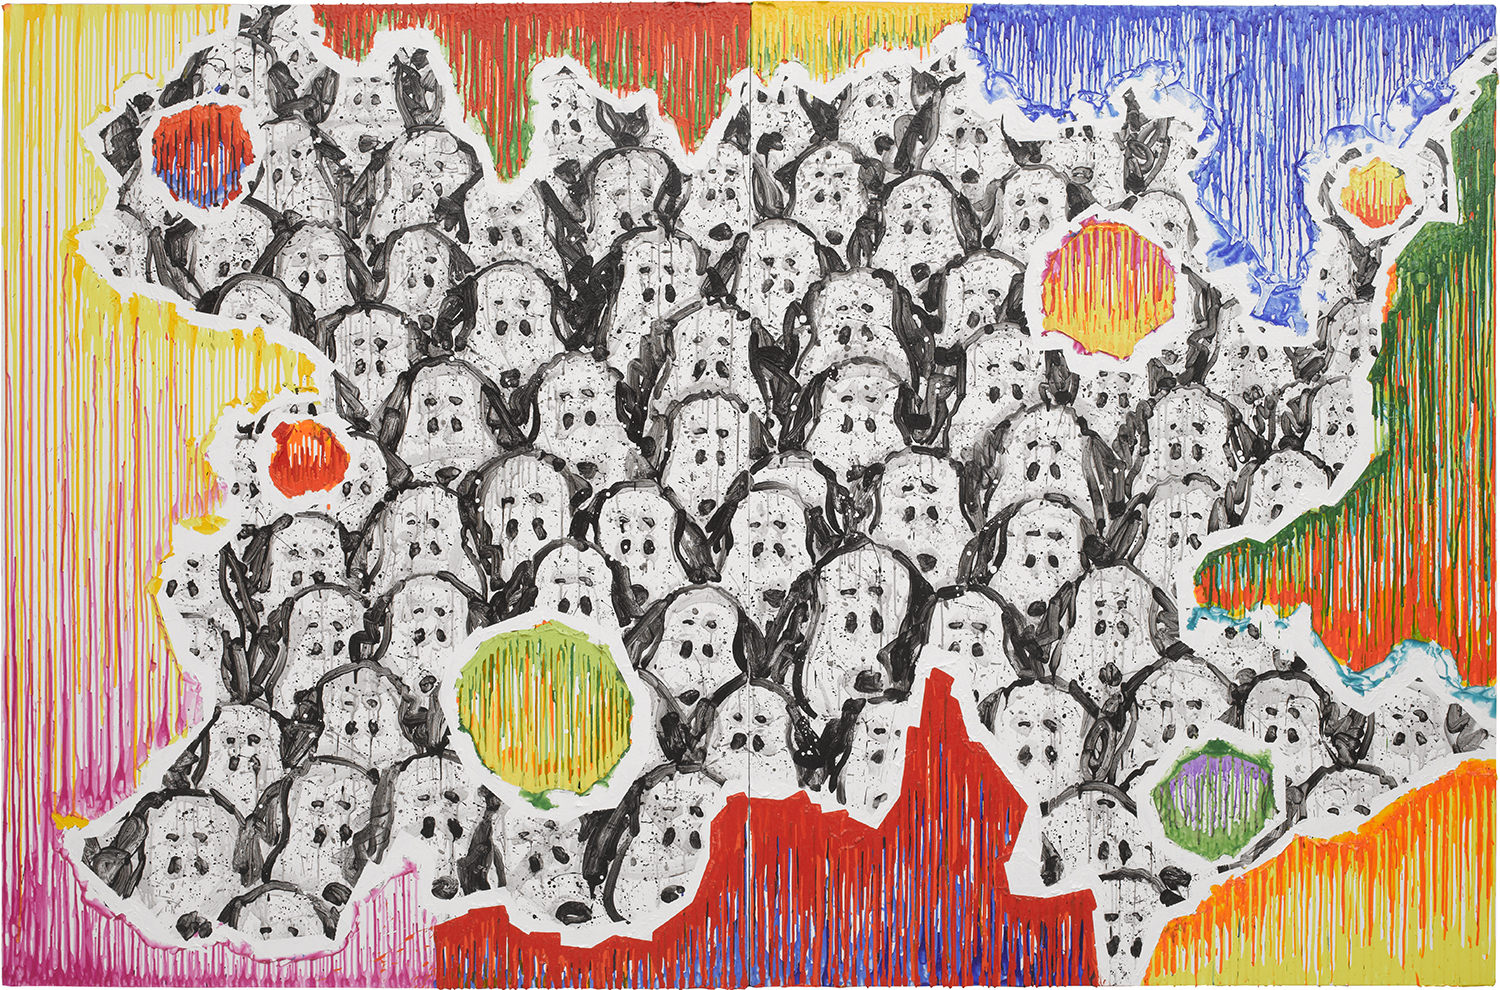 College Dogs Gone Wild (Arty-Fact 01) | acrylic and varnish on canvas | 84″ x 128″ | 2011